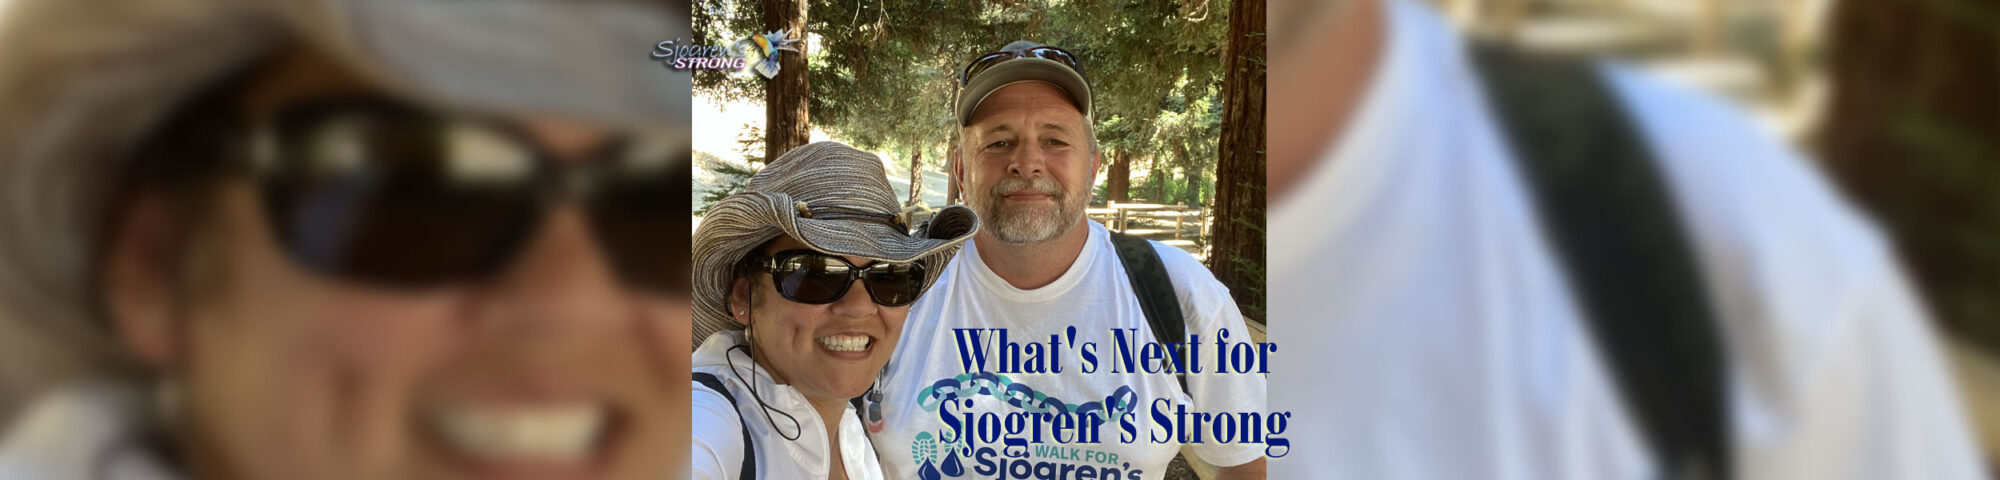 What's Next for Sjogren's Strong